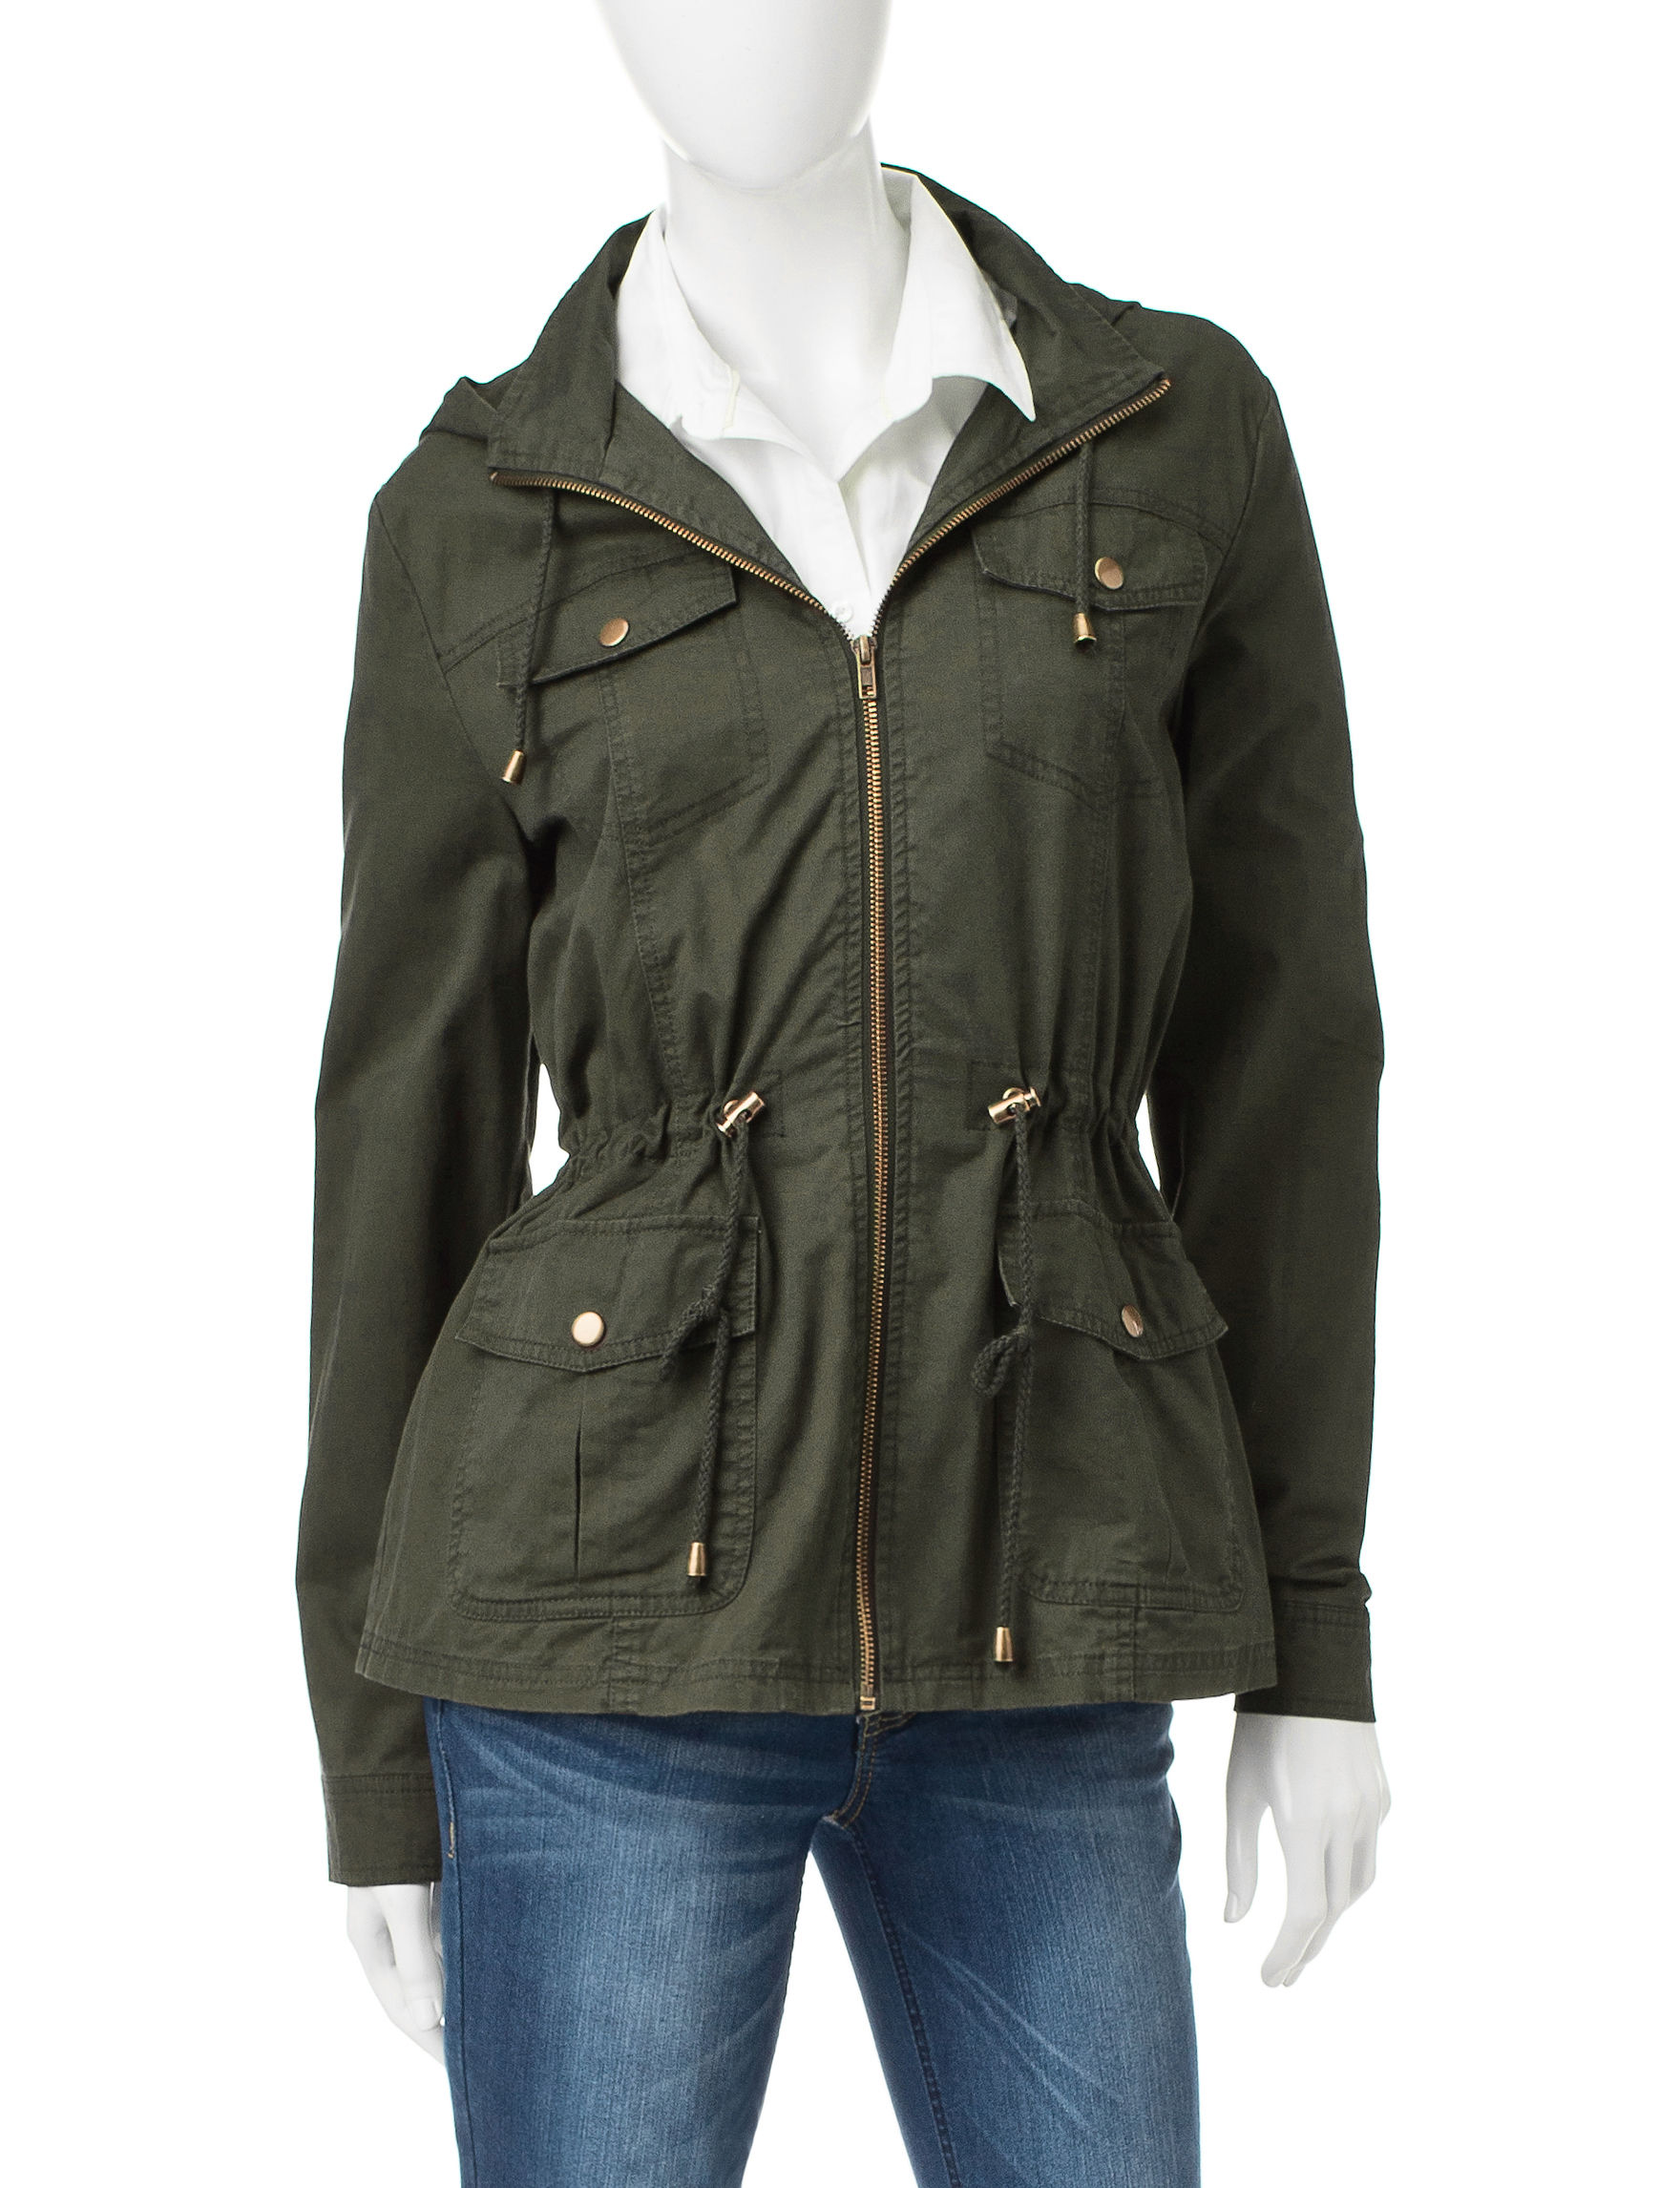 Ashley Olive Fleece & Soft Shell Jackets